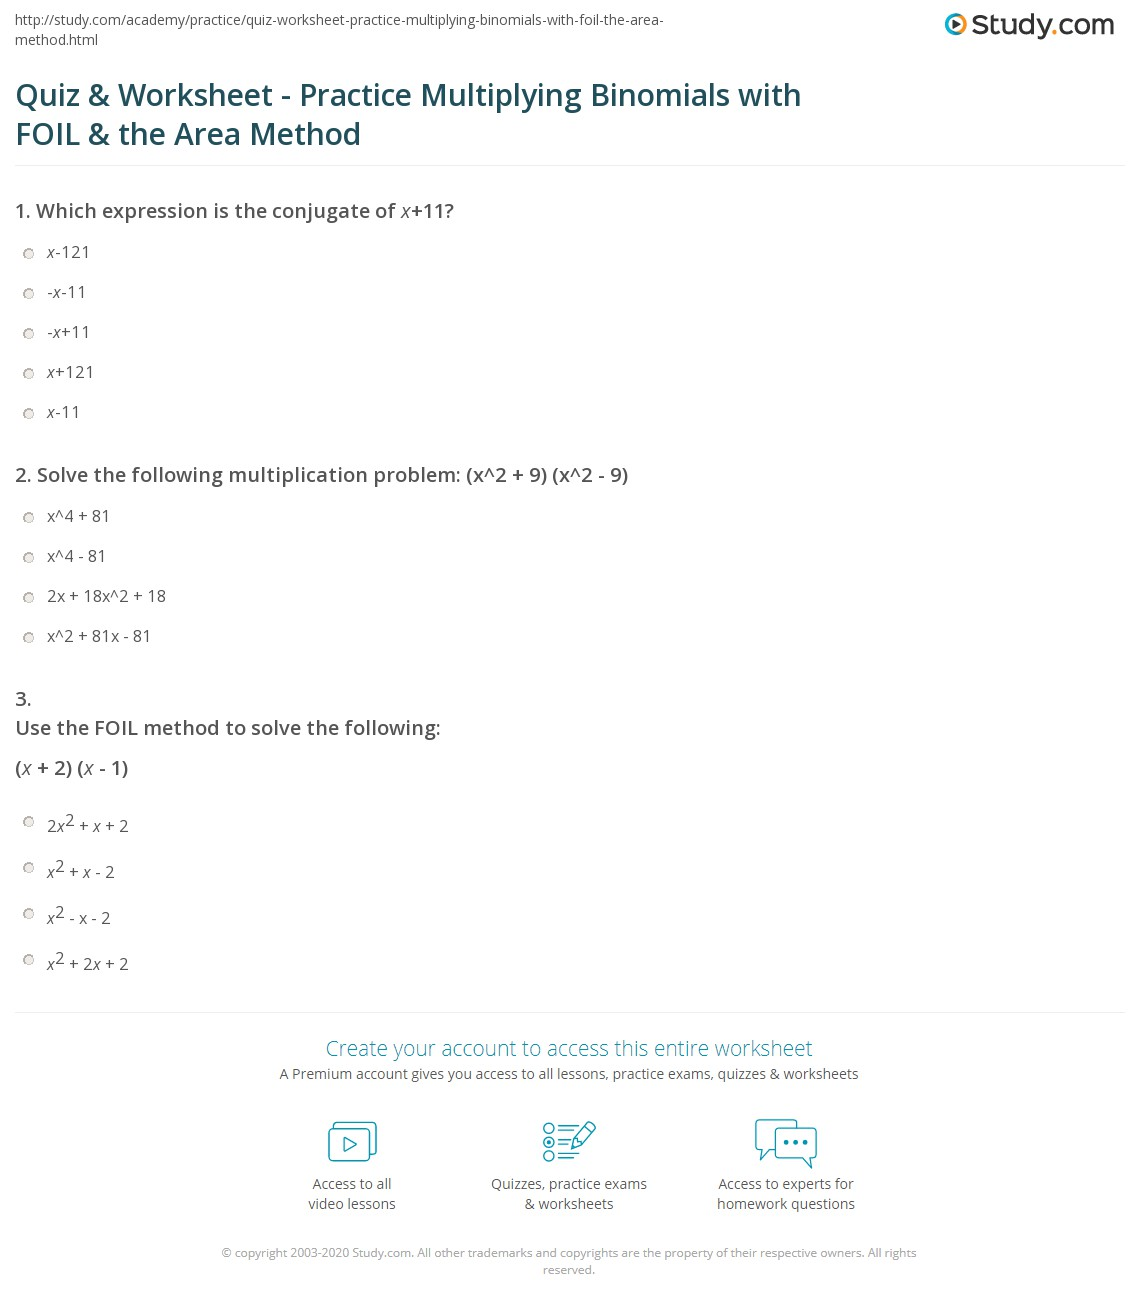 Quiz & Worksheet - Practice Multiplying Binomials with FOIL & the ...